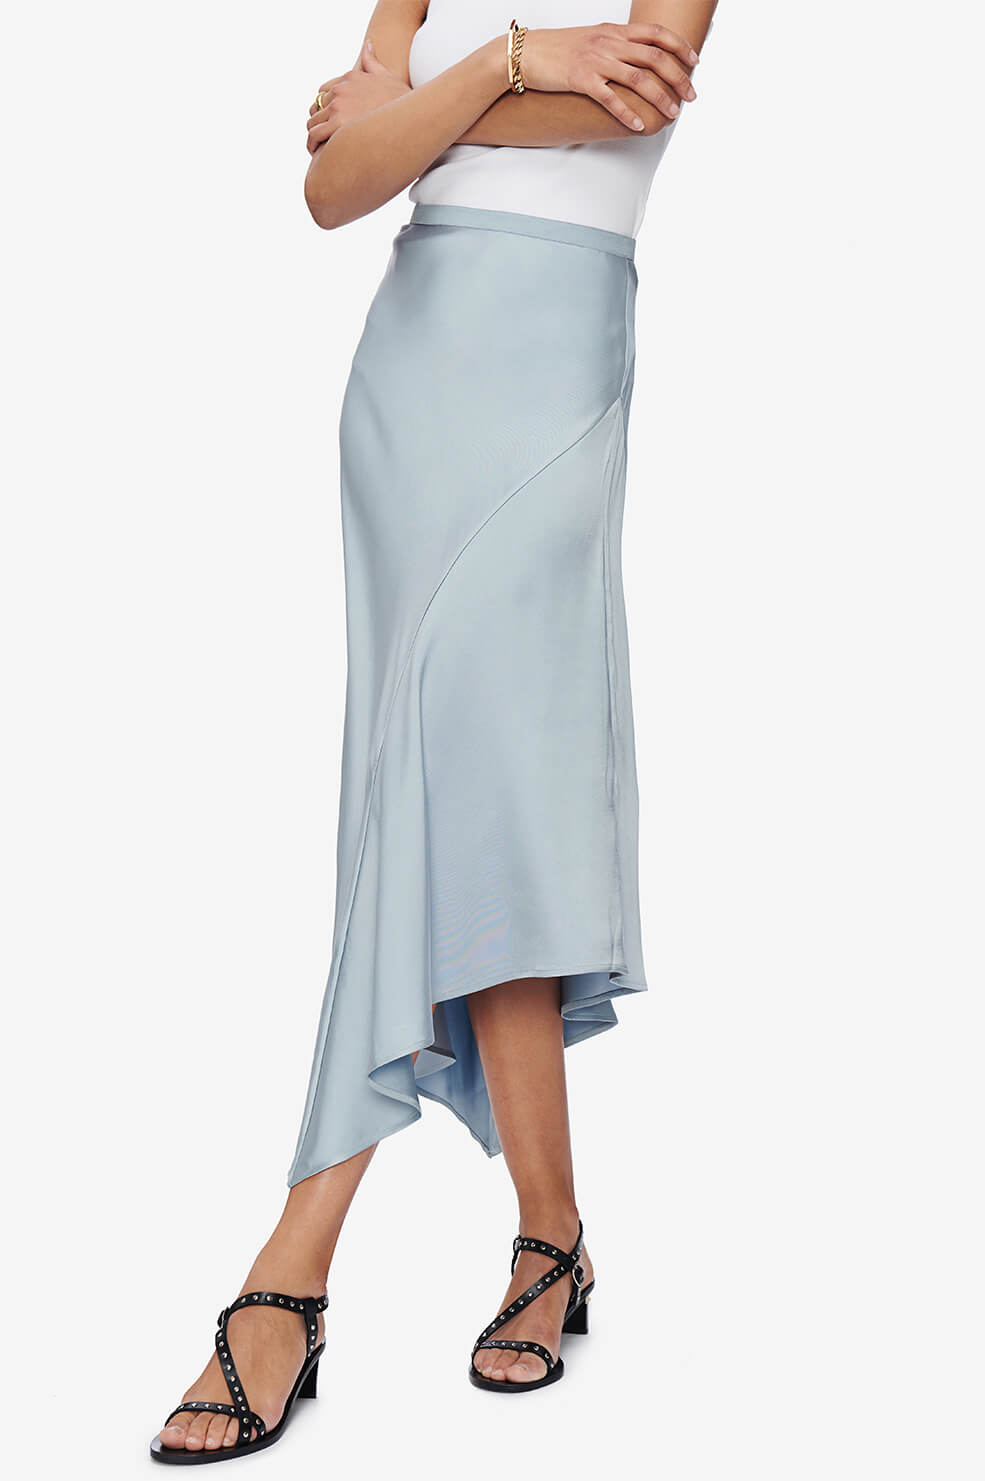 ANINE BING Bailey Skirt - Barely Blue